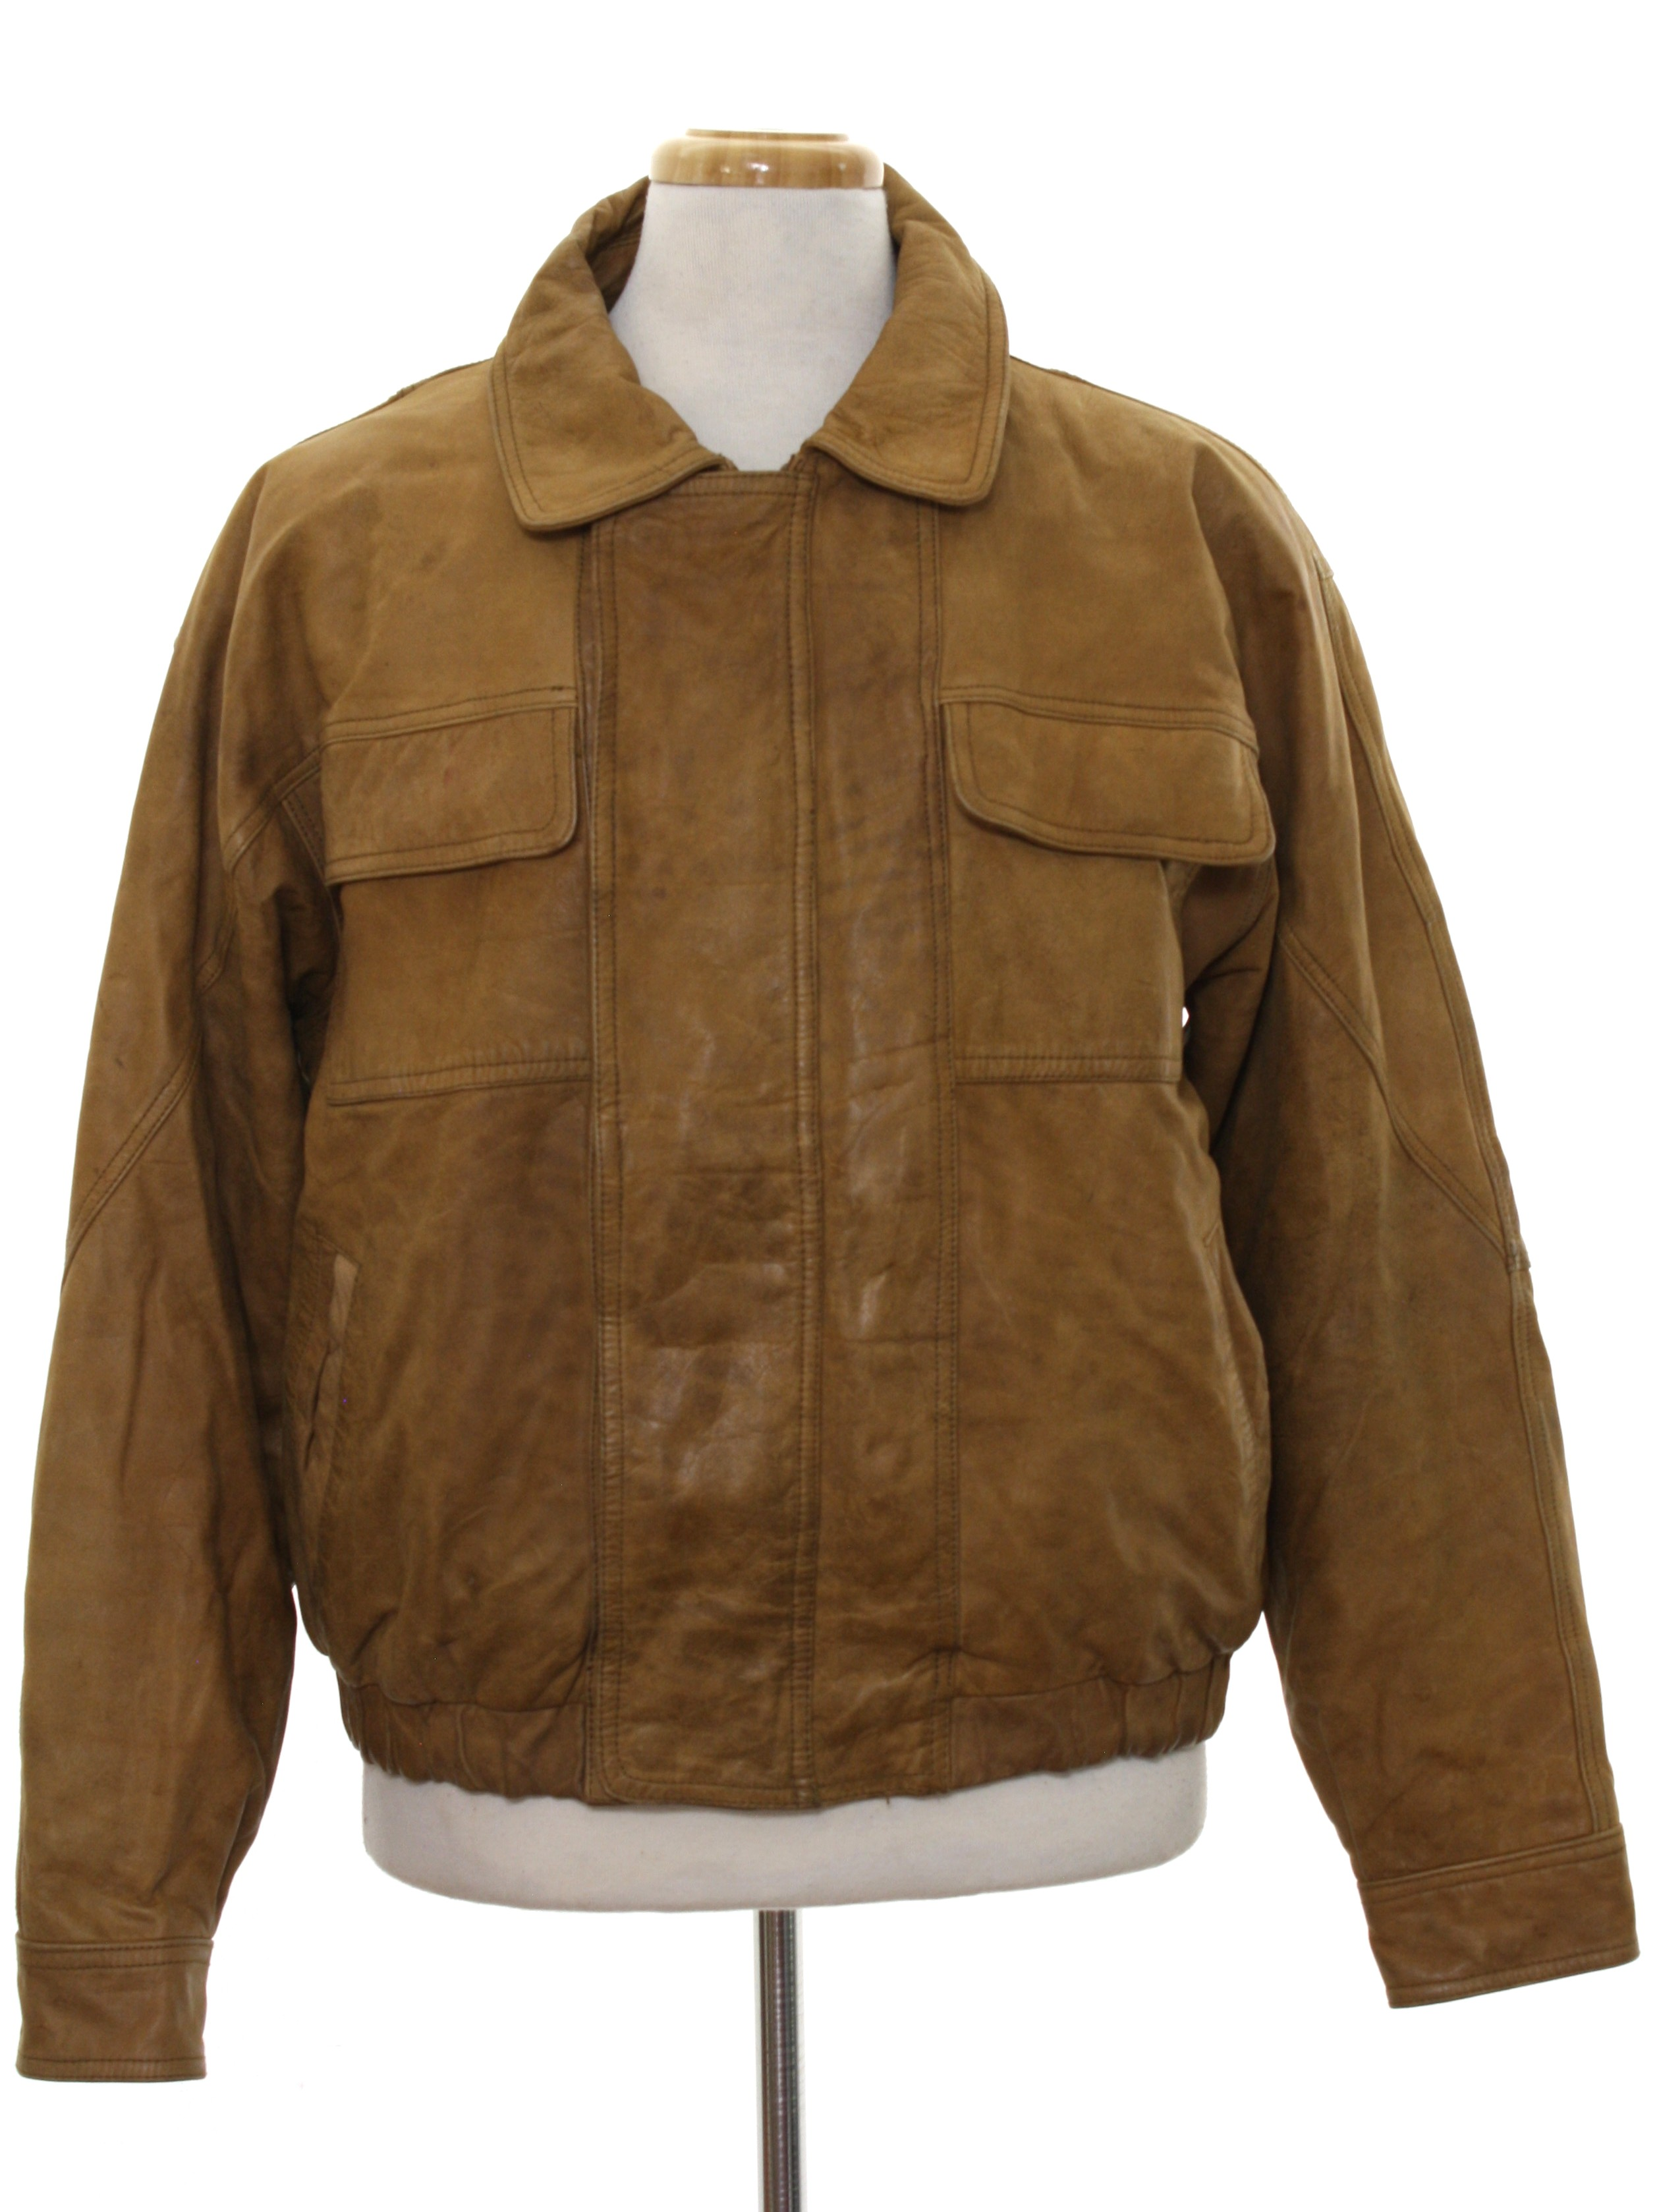 Retro Eighties Leather Jacket Late 80s Or Early 90s New